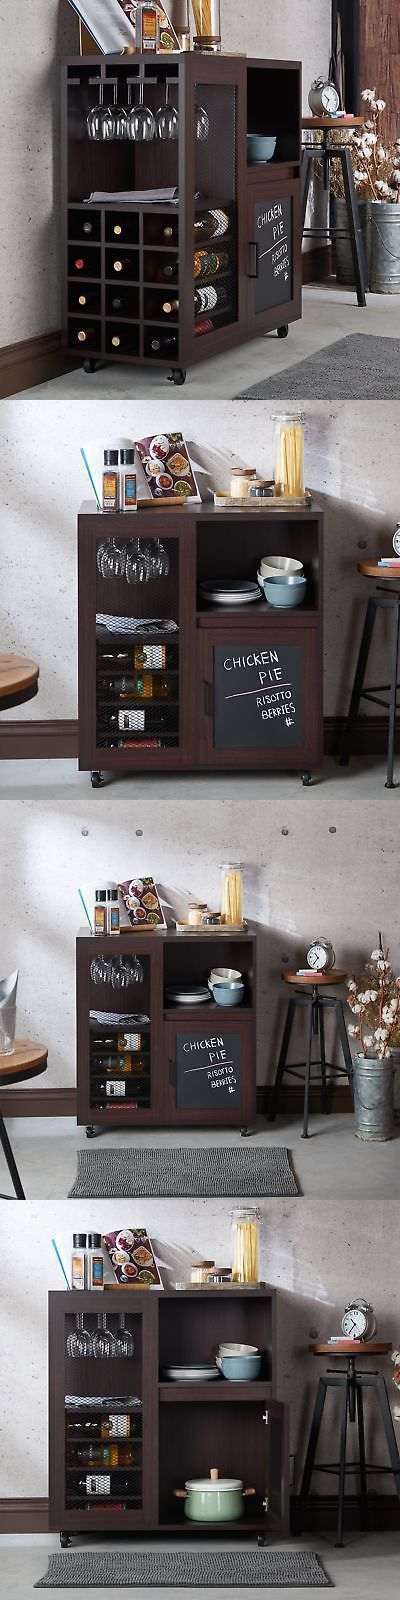 Home Pubs and Bars 115713: Home Bar Furniture Cabinet Wine Storage Liquor Rack Pub Bottle Wood Mini Server -> BUY IT NOW ONLY: $273.57 on eBay! #wineracks